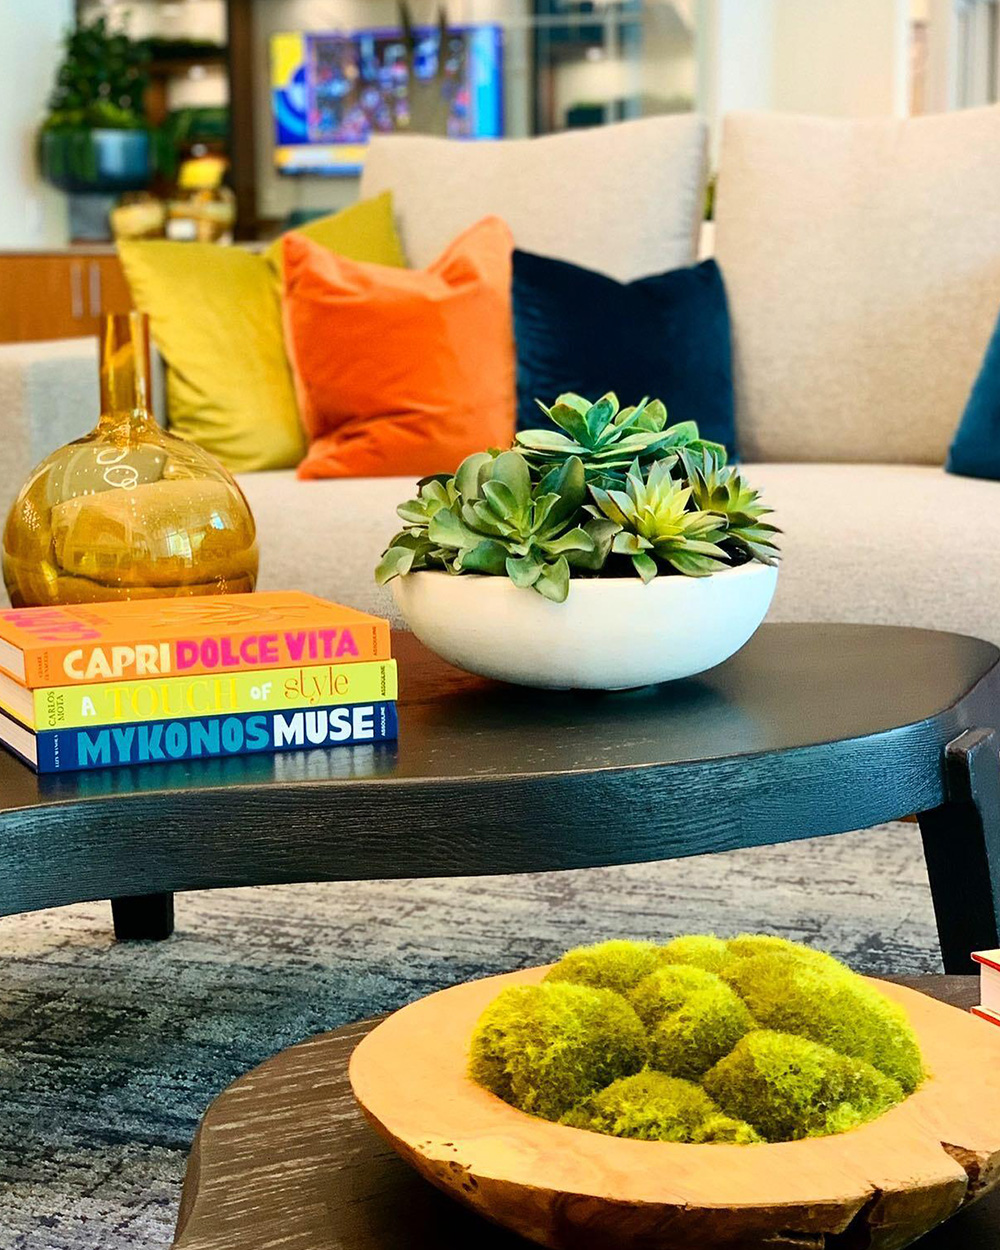 Beautiful plant with coffee table books